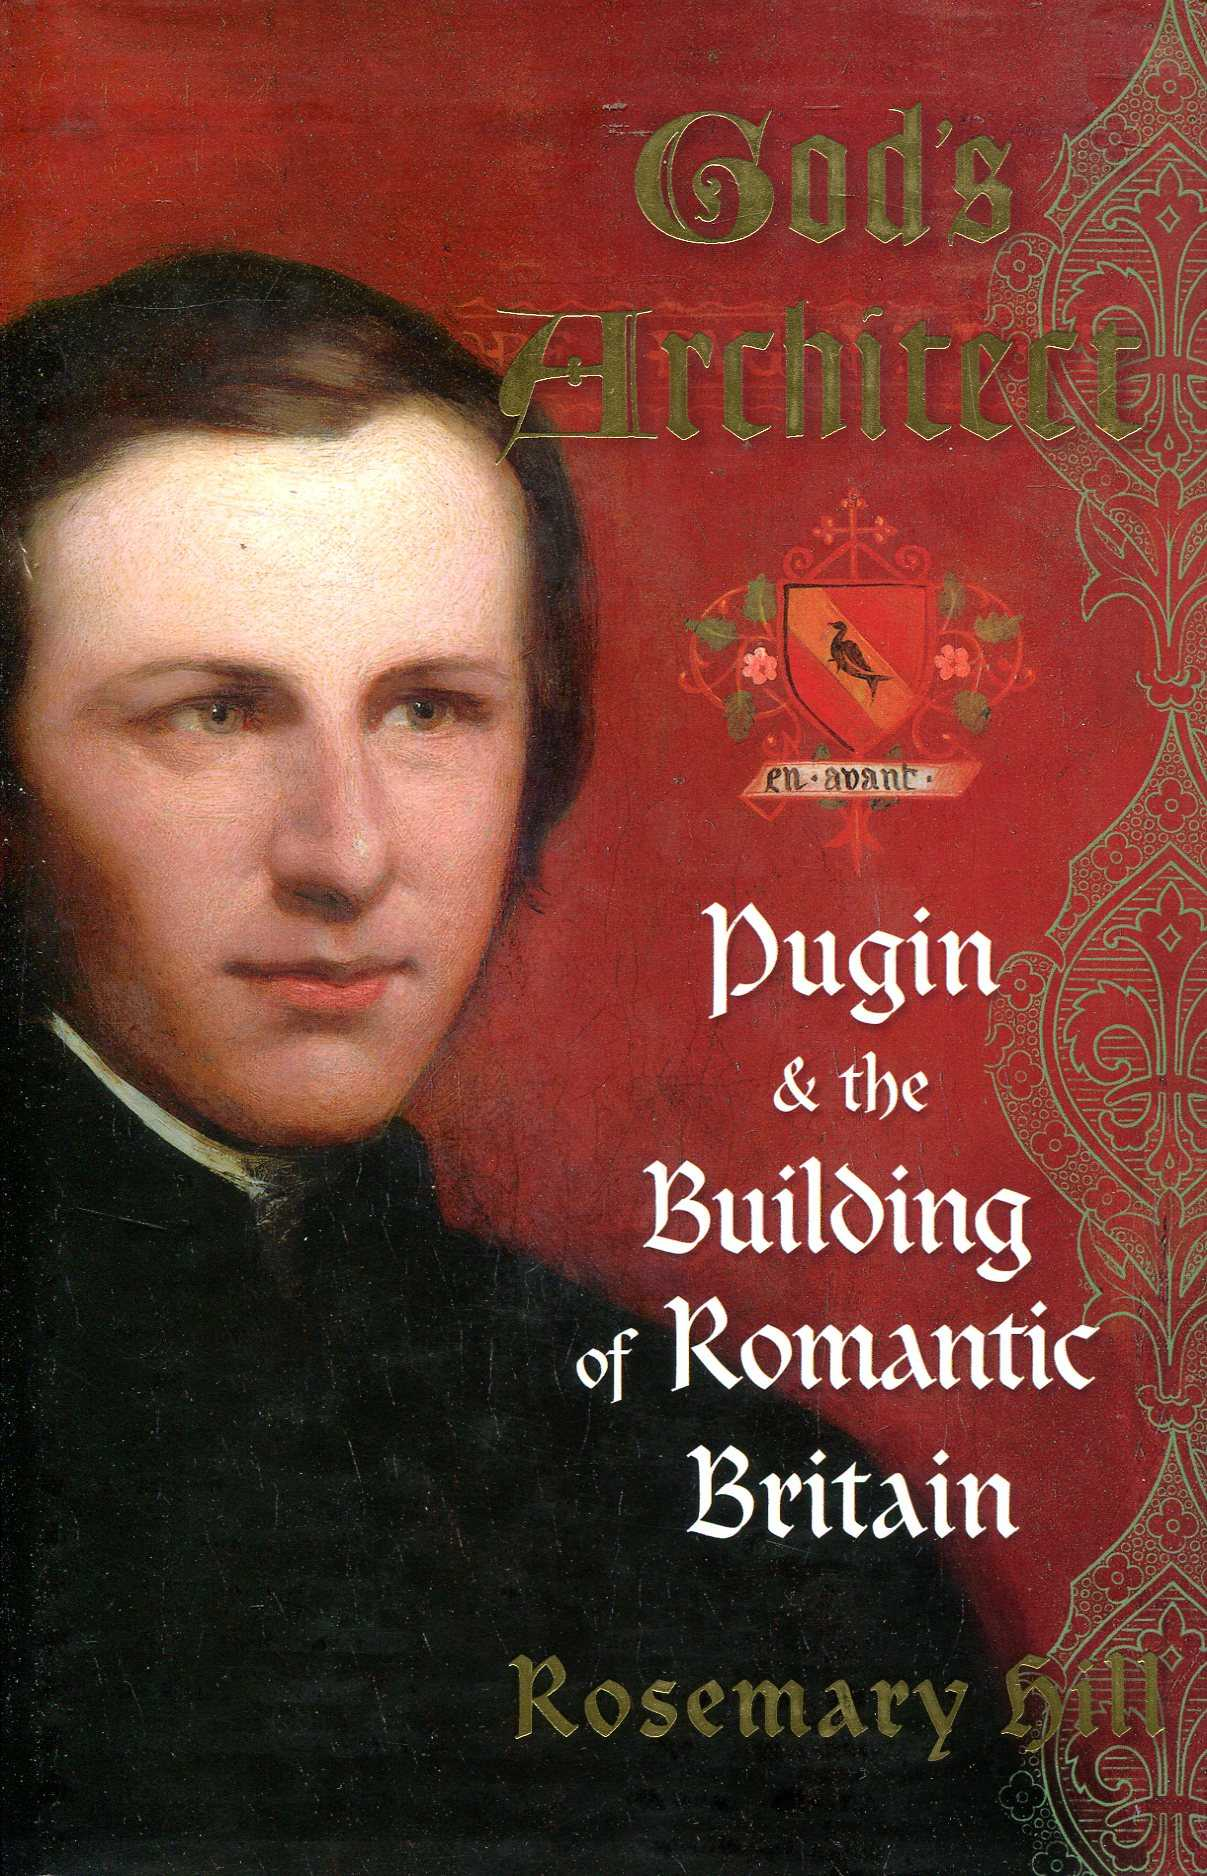 Image for Gods Architect : Pugin And The Building Of Romantic Britain